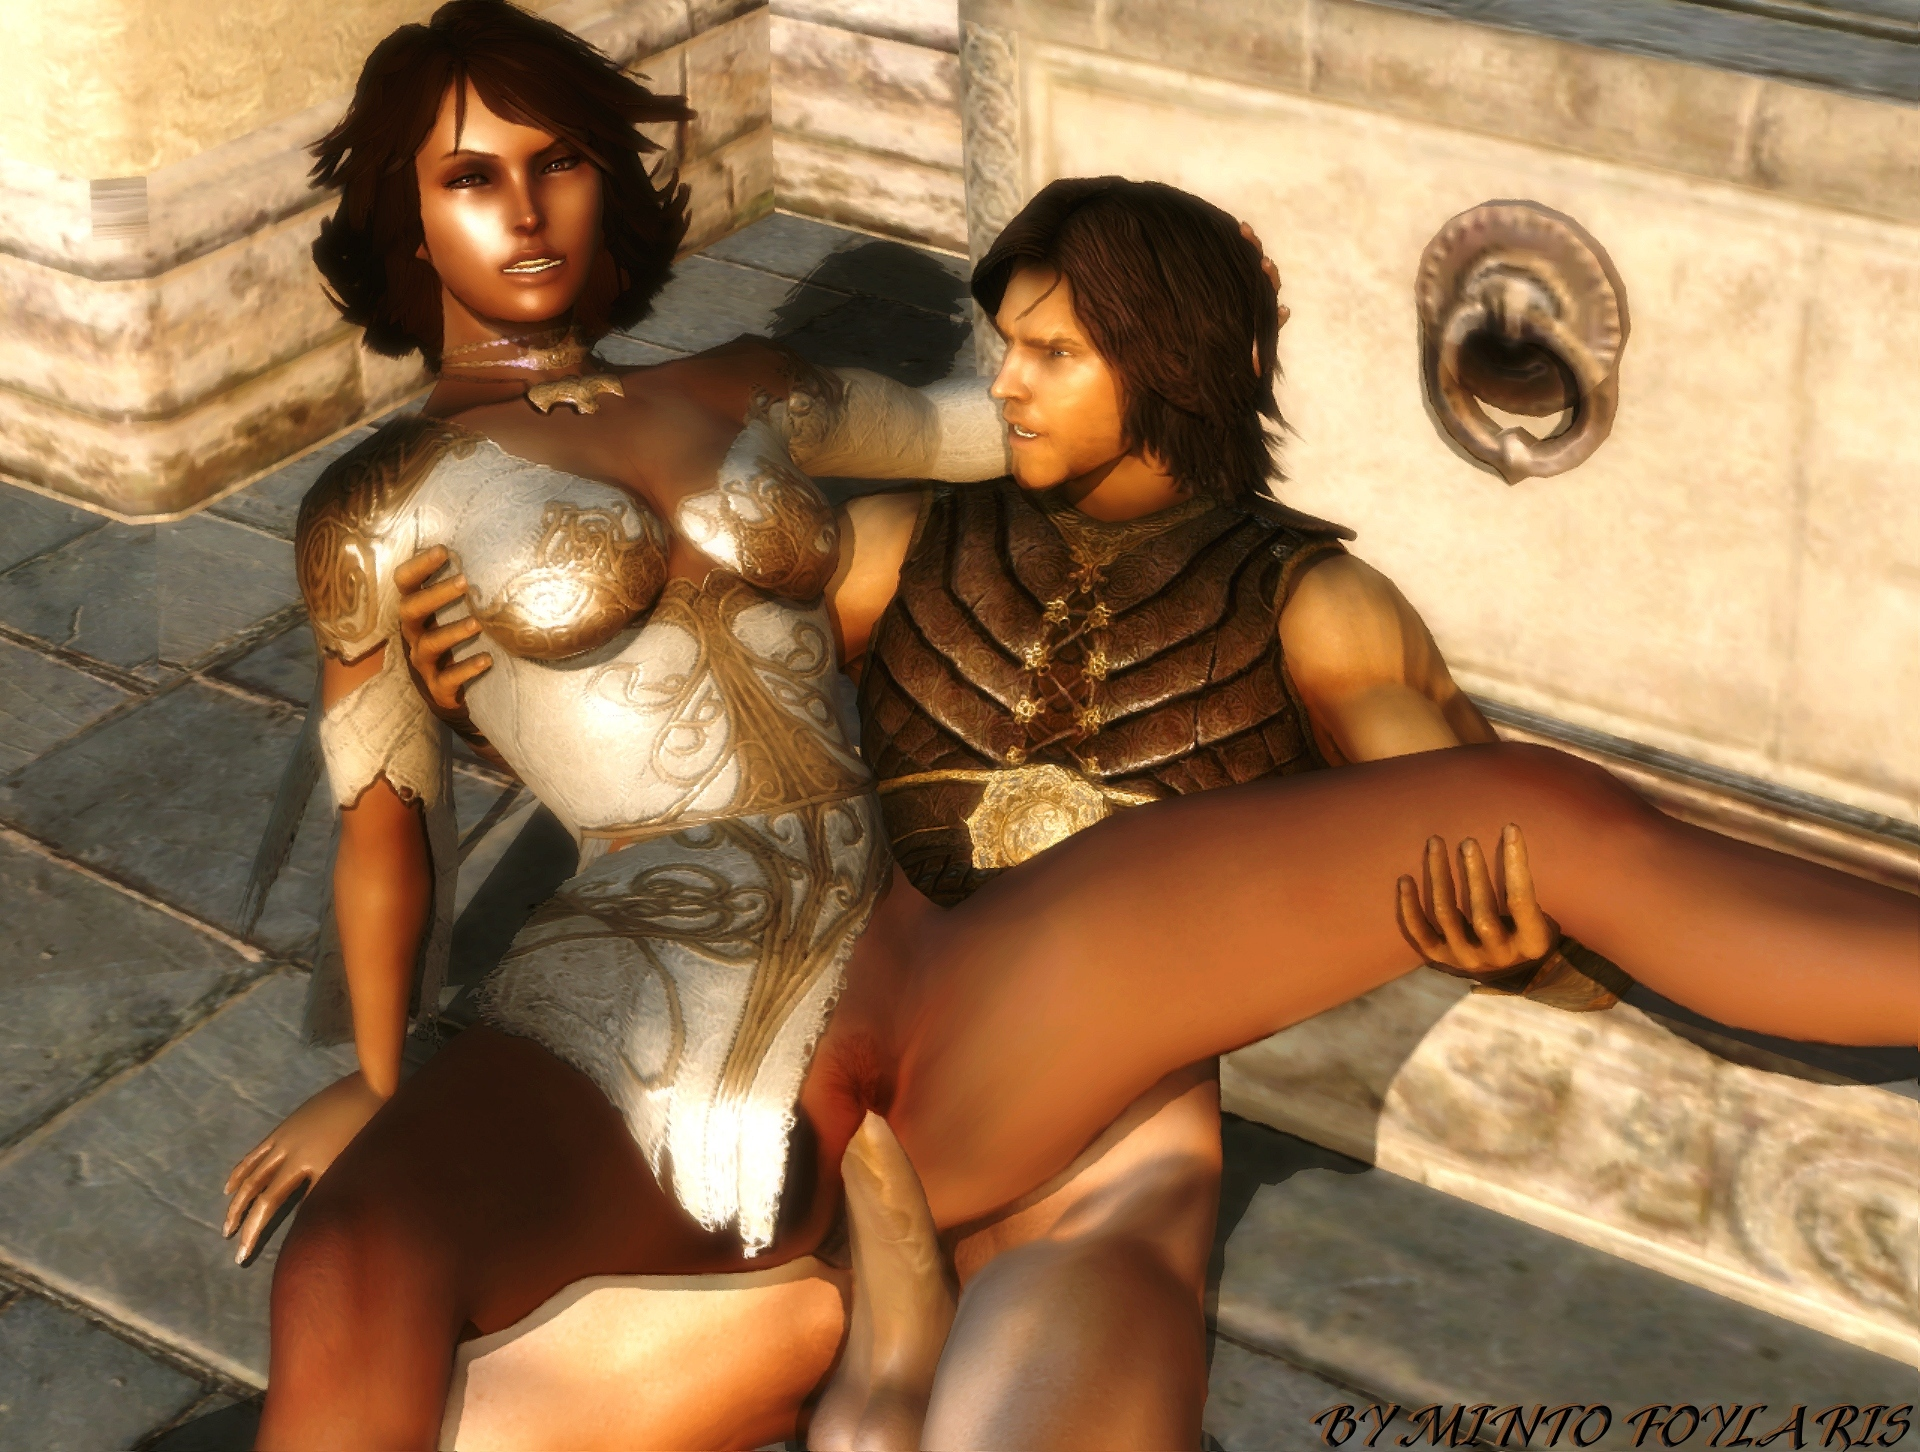 Prince of persia porn images naked photos